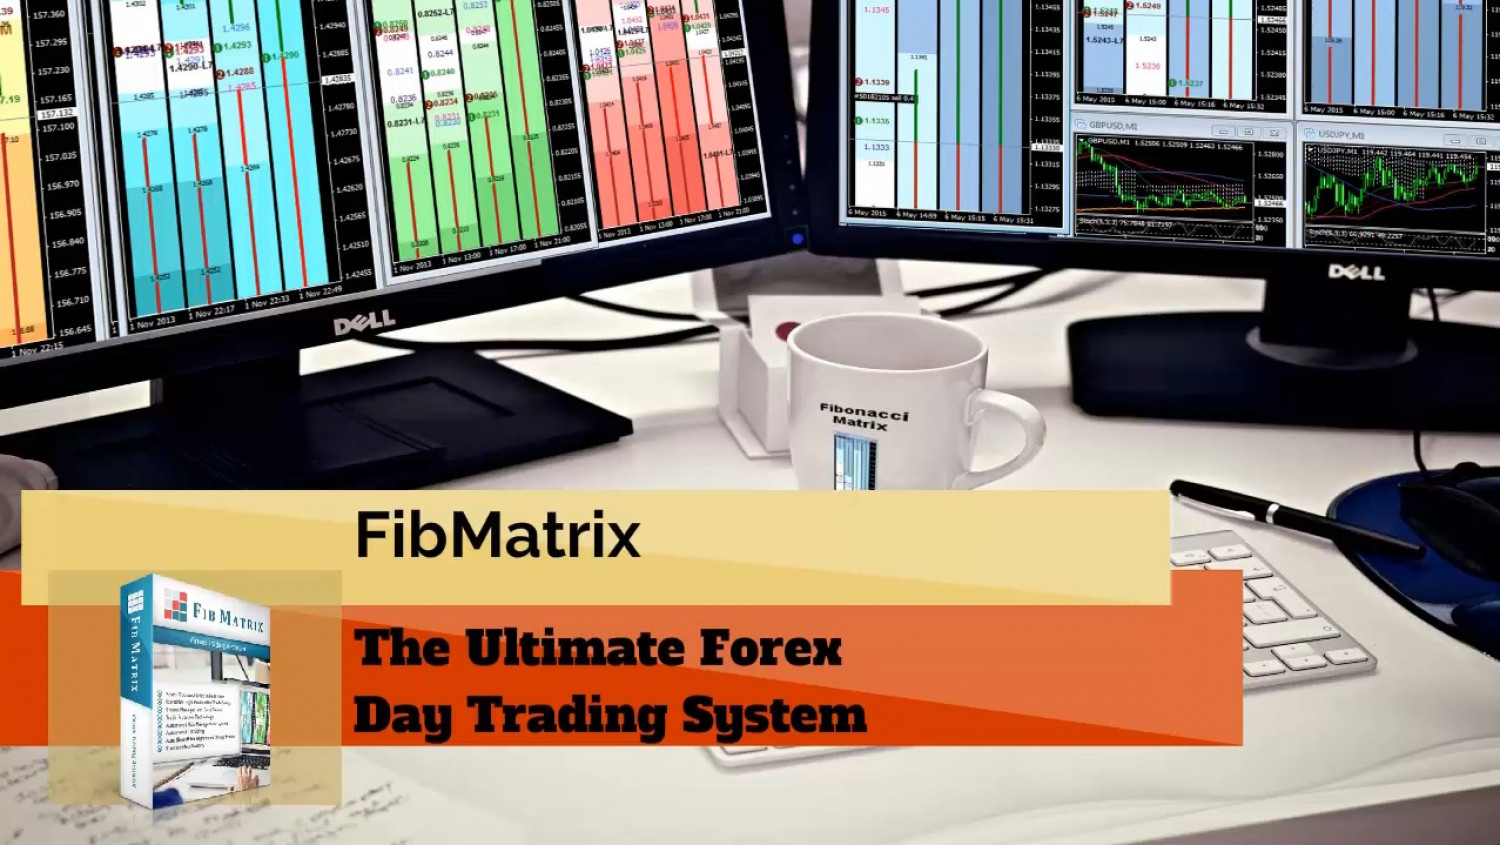 FibMatrix Live Online Forex Trade Room and Forex Day Trading Software Infographic